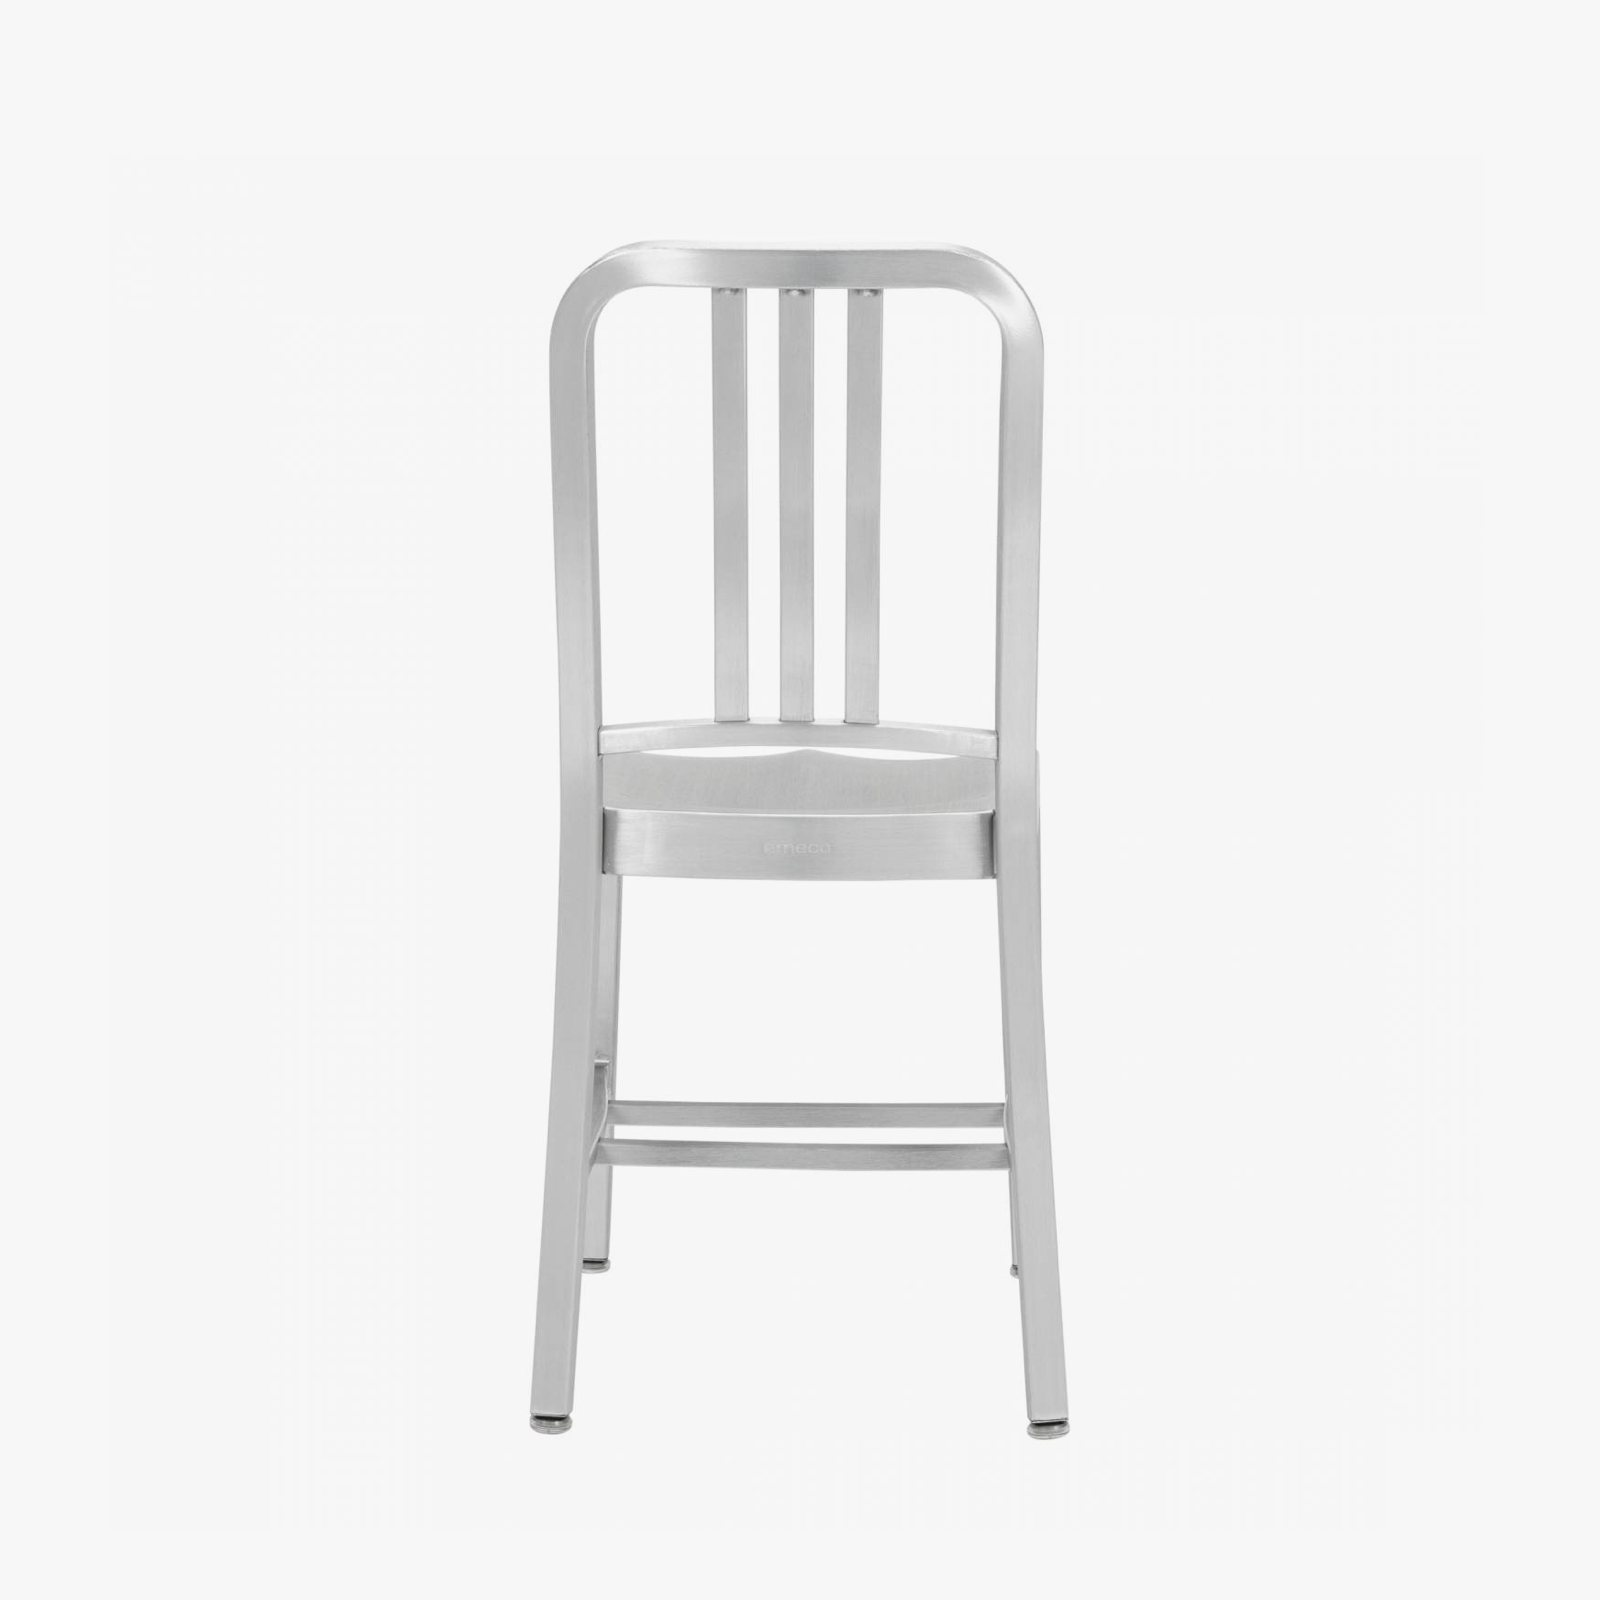 Navy Chair By Wilton C Dinges For Emeco Up Interiors